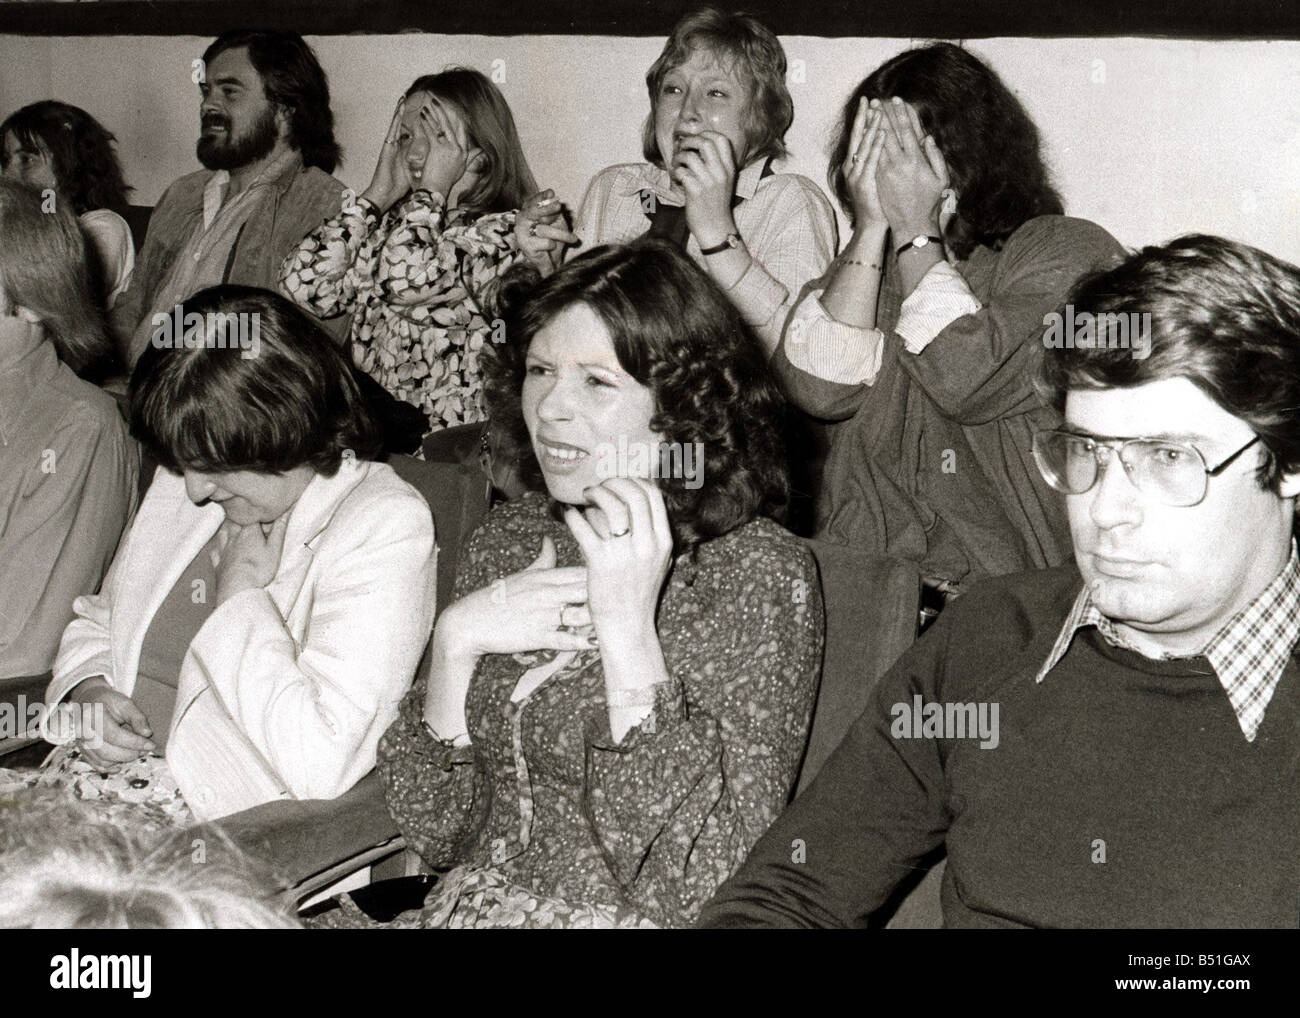 Audiences reaction to original screening of Alien in Odeon Theatre Leicester Square A woman covers her face in fear June 1979 Stock Photo